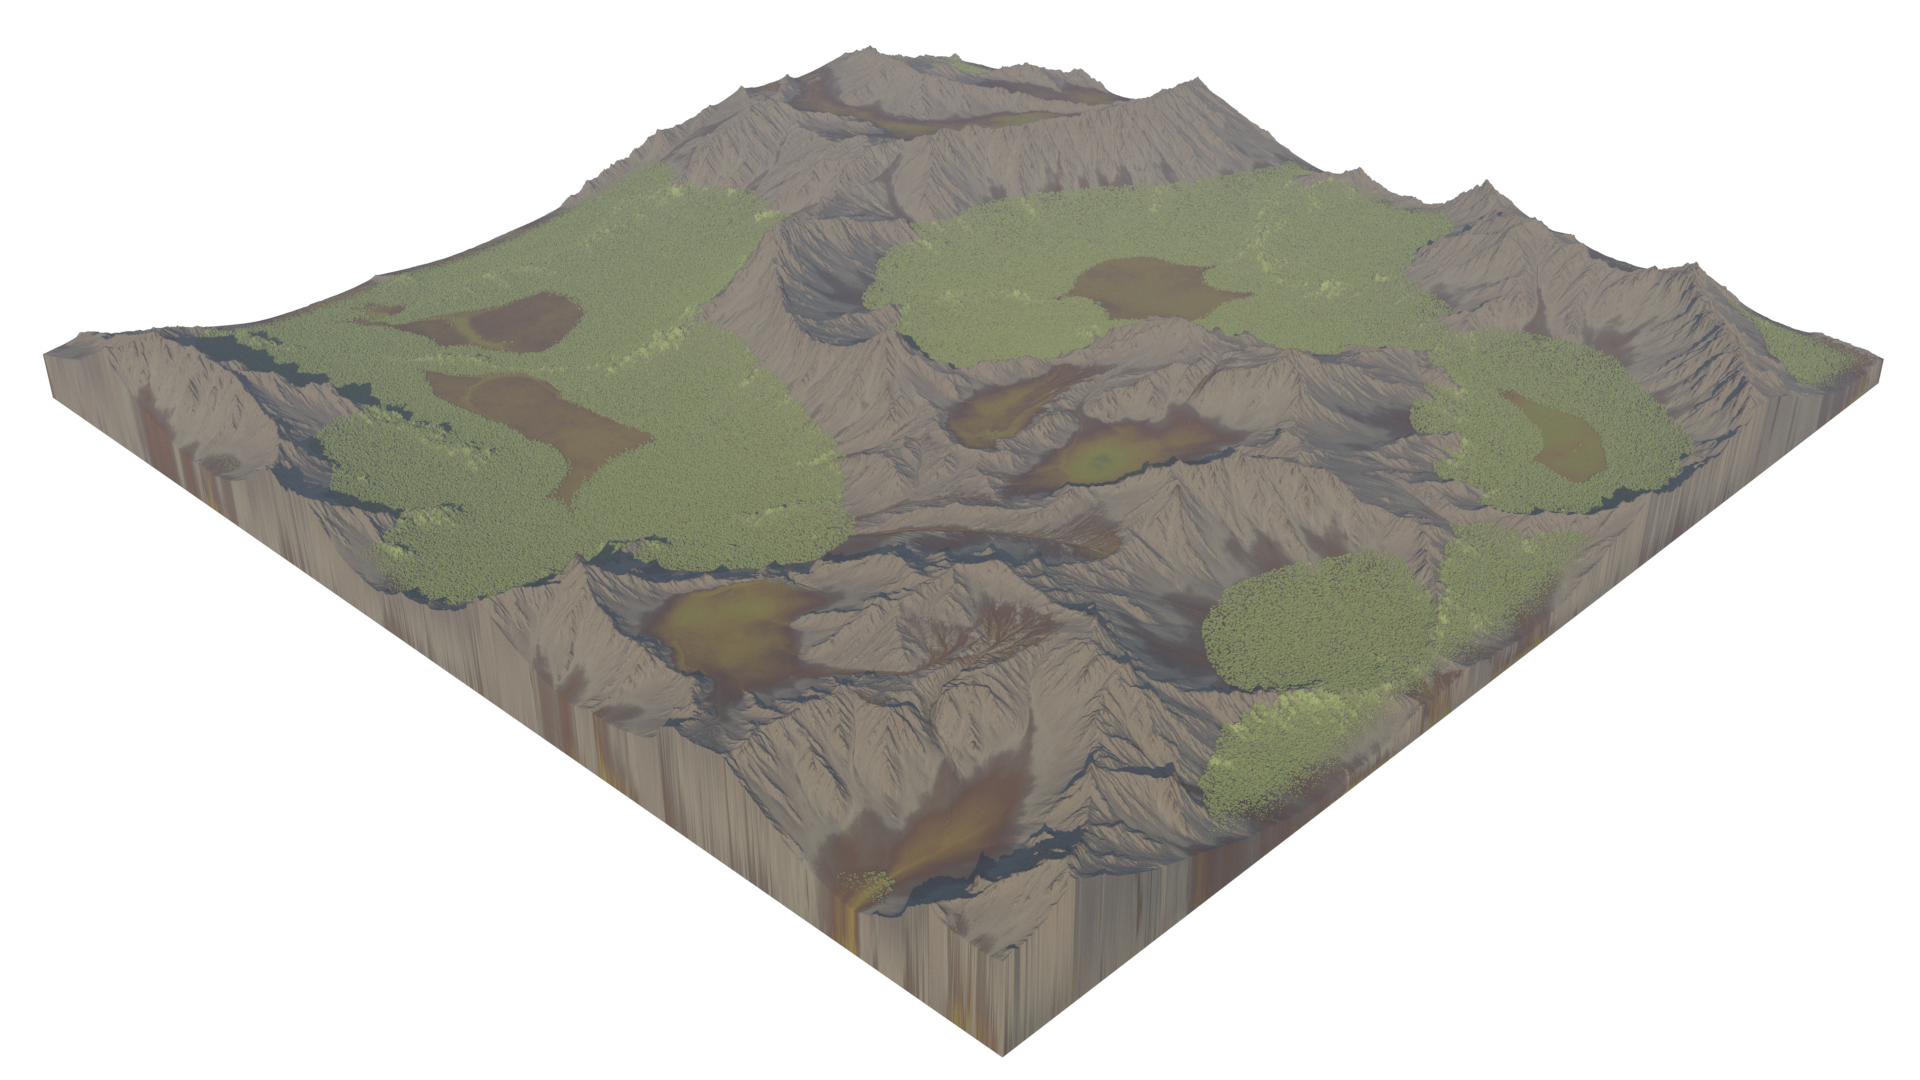 Mountainswithgrass_04_